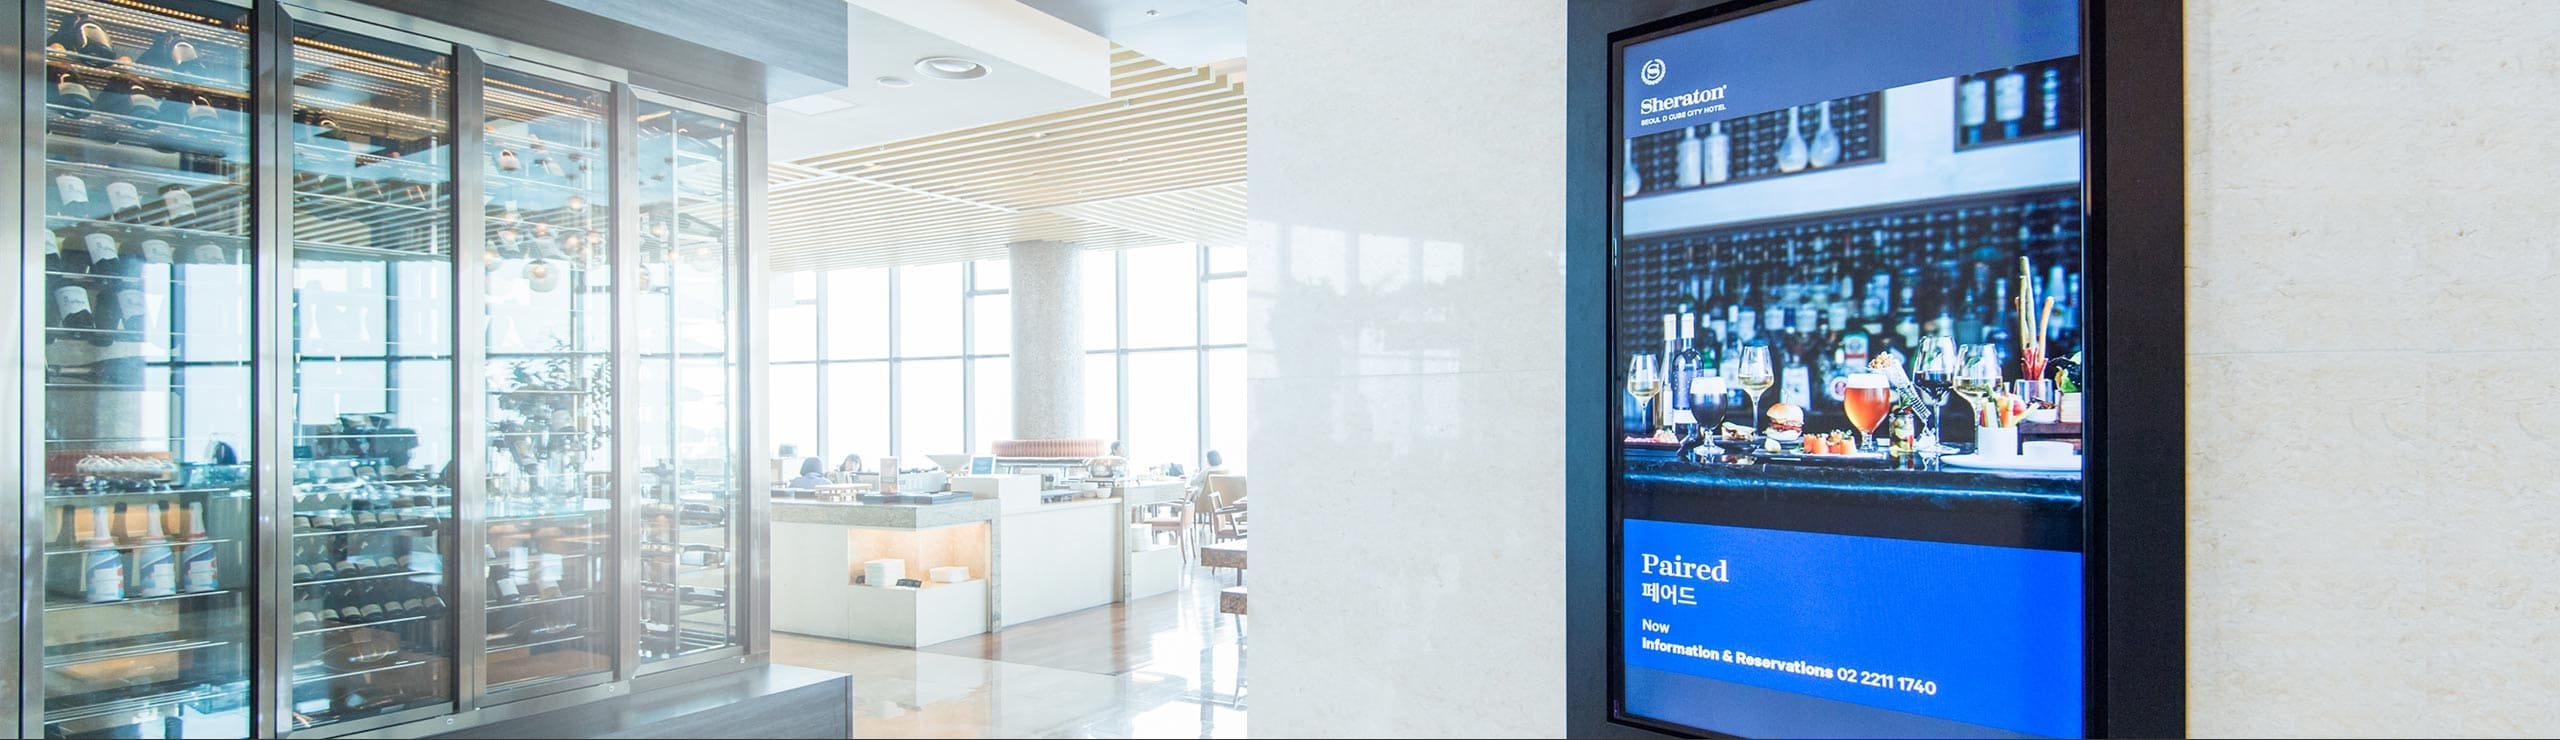 Sheraton Seoul D Cube City Hotel - Success story of digital signage for hotels and hospitality